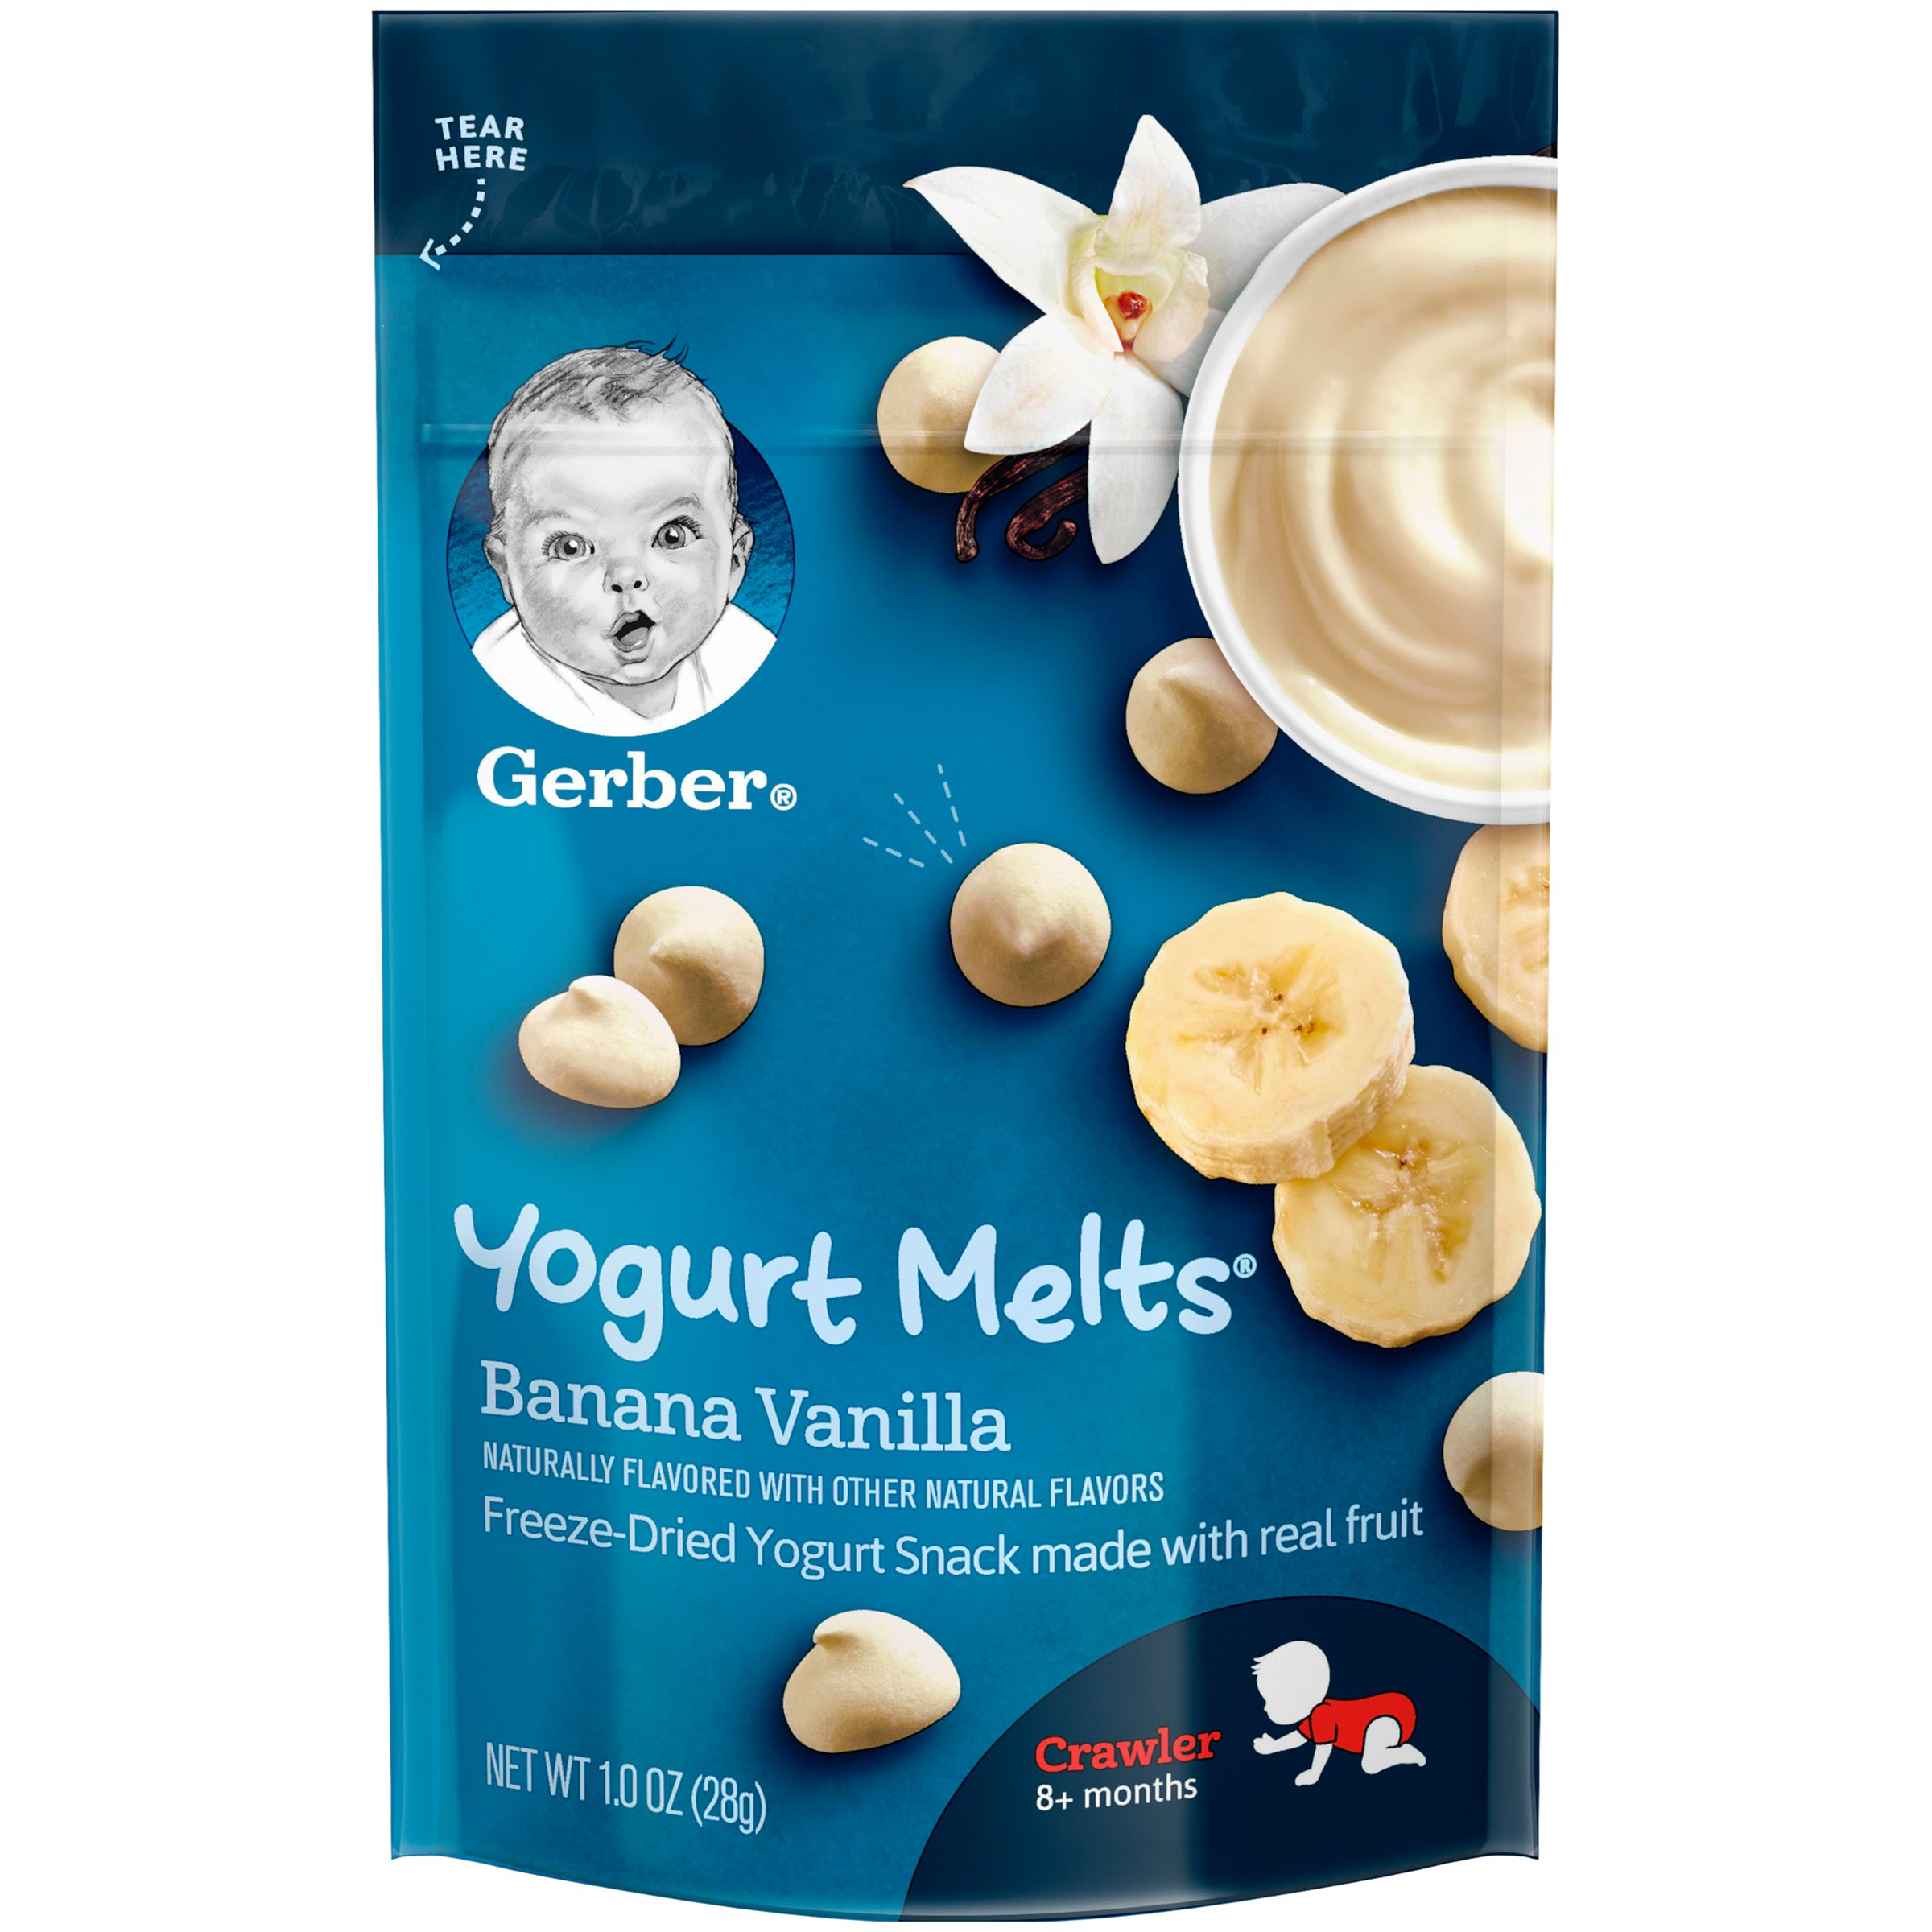 Gerber Yogurt Melts Freeze-Dried Yogurt Snack made with real fruit, Banana Vanilla, 1 oz (Pack of 7)